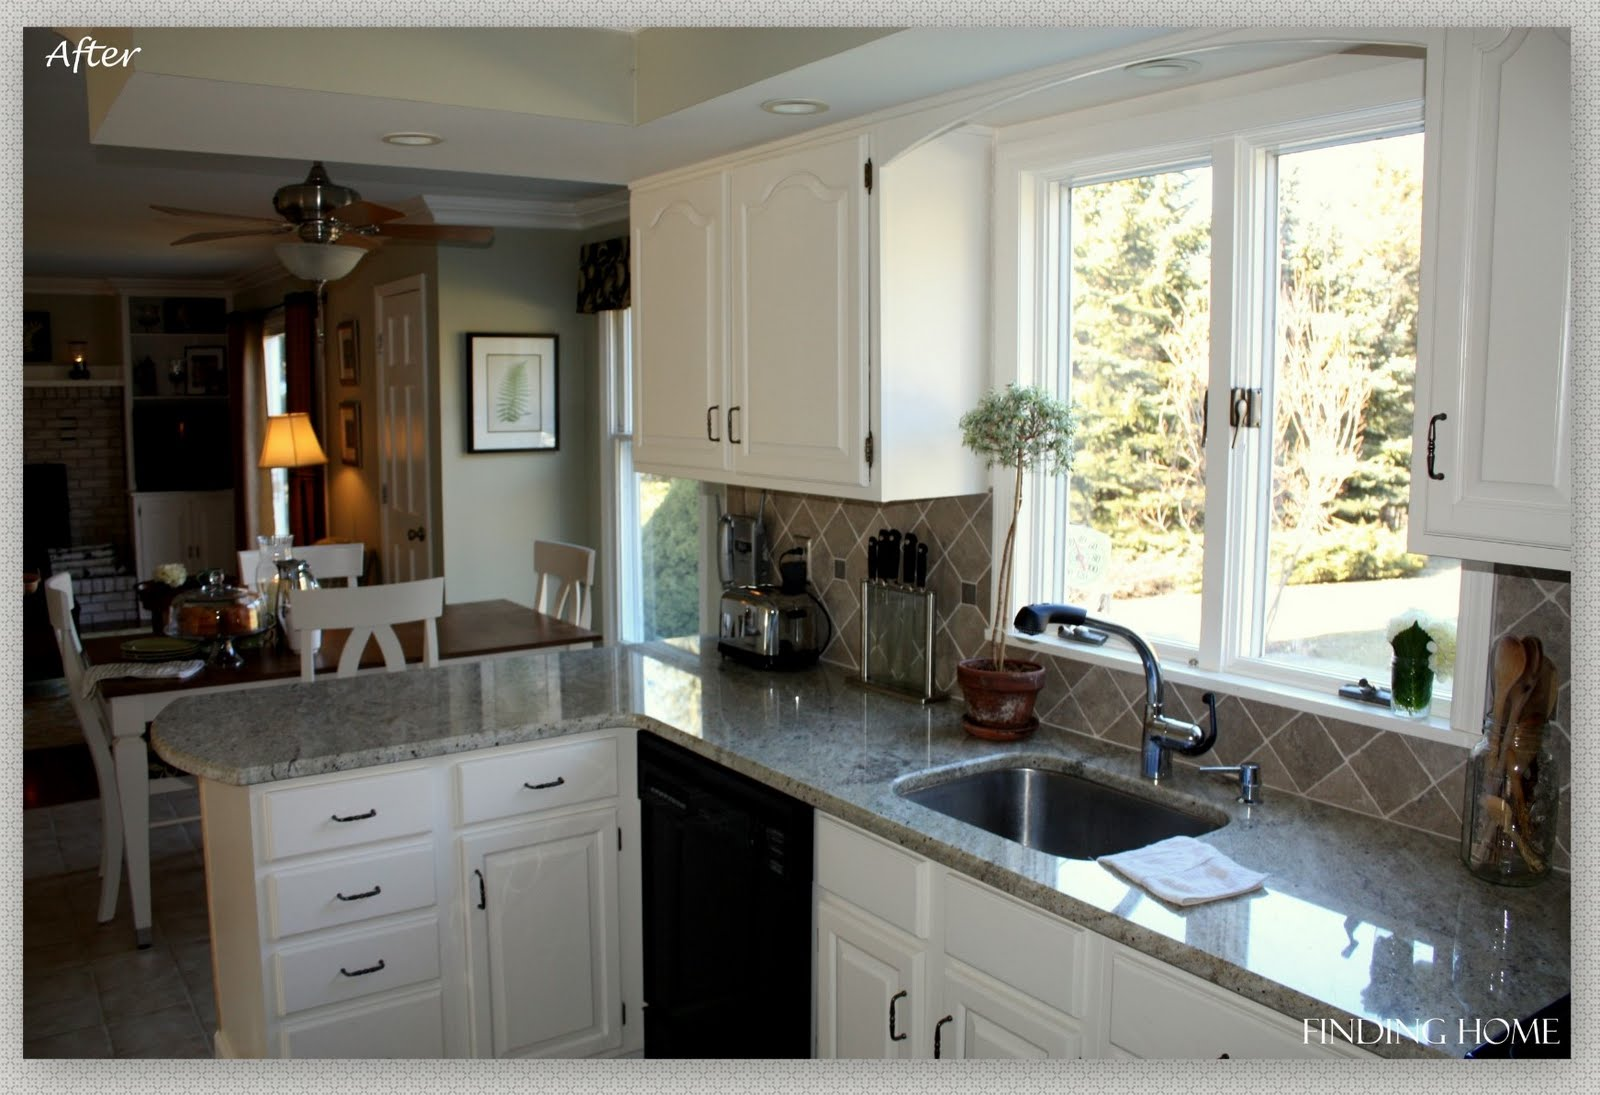 Remodelaholic from oak to beautiful white kitchen for Before and after painting kitchen cabinets white